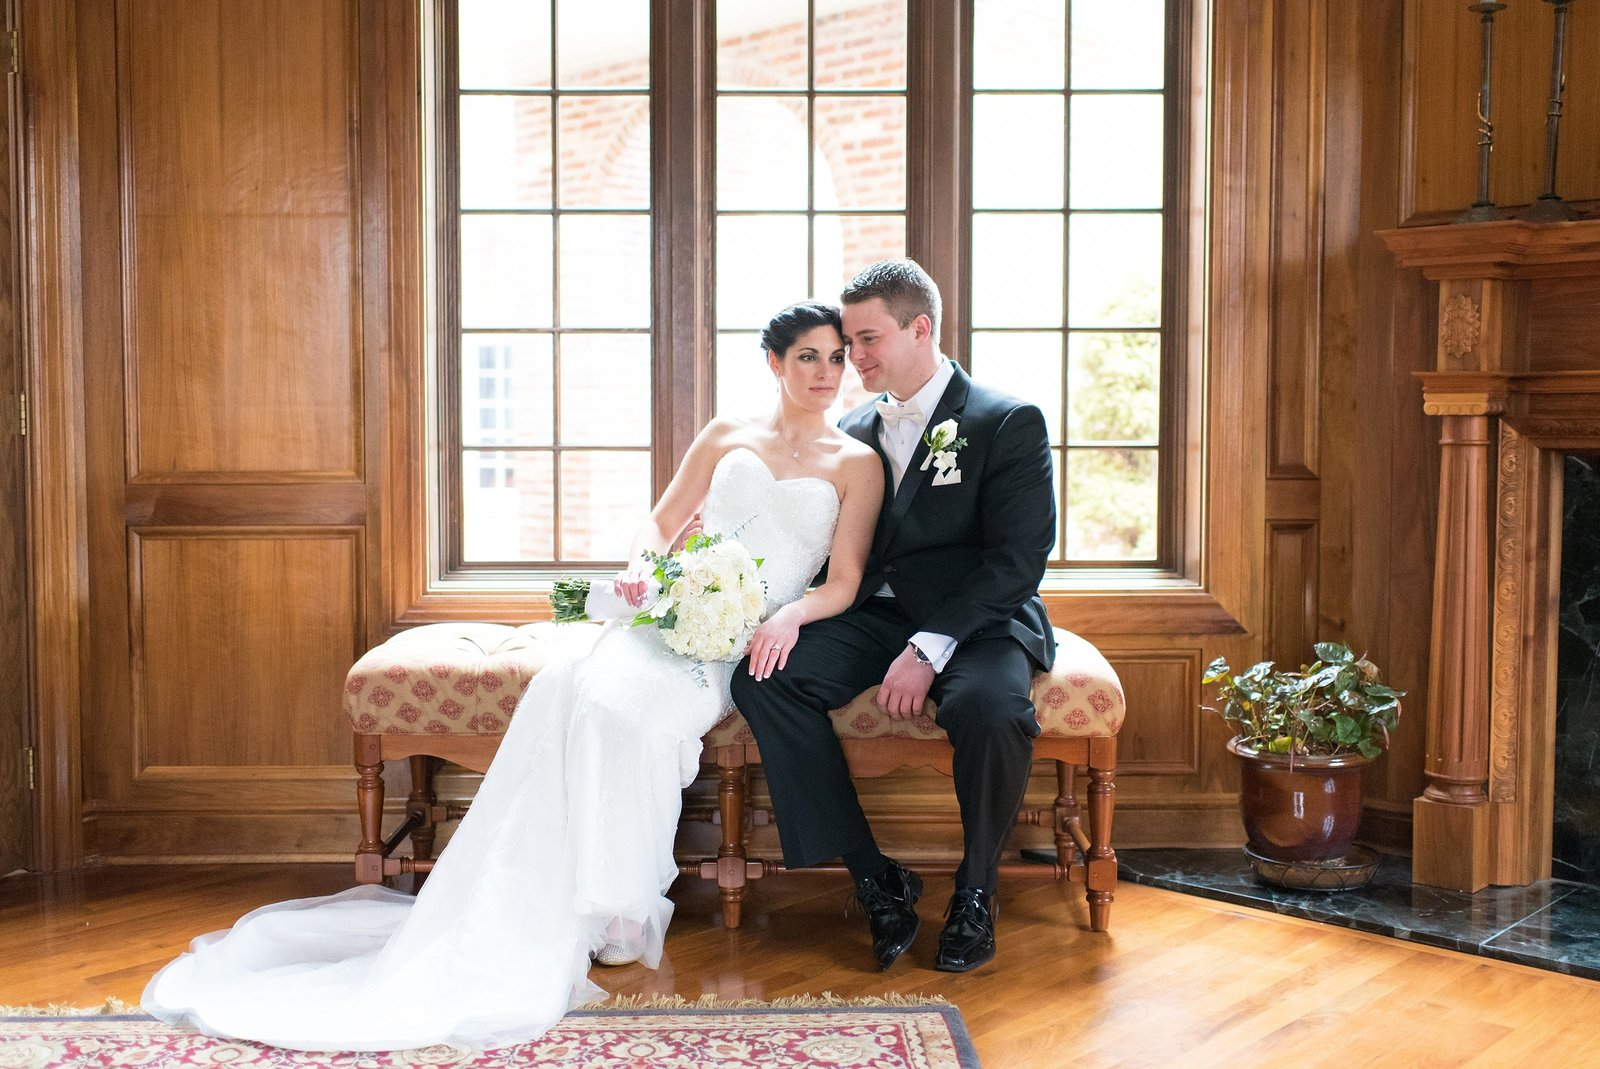 Classic Indoor Bride and Groom Wedding Wood Mantle Photo